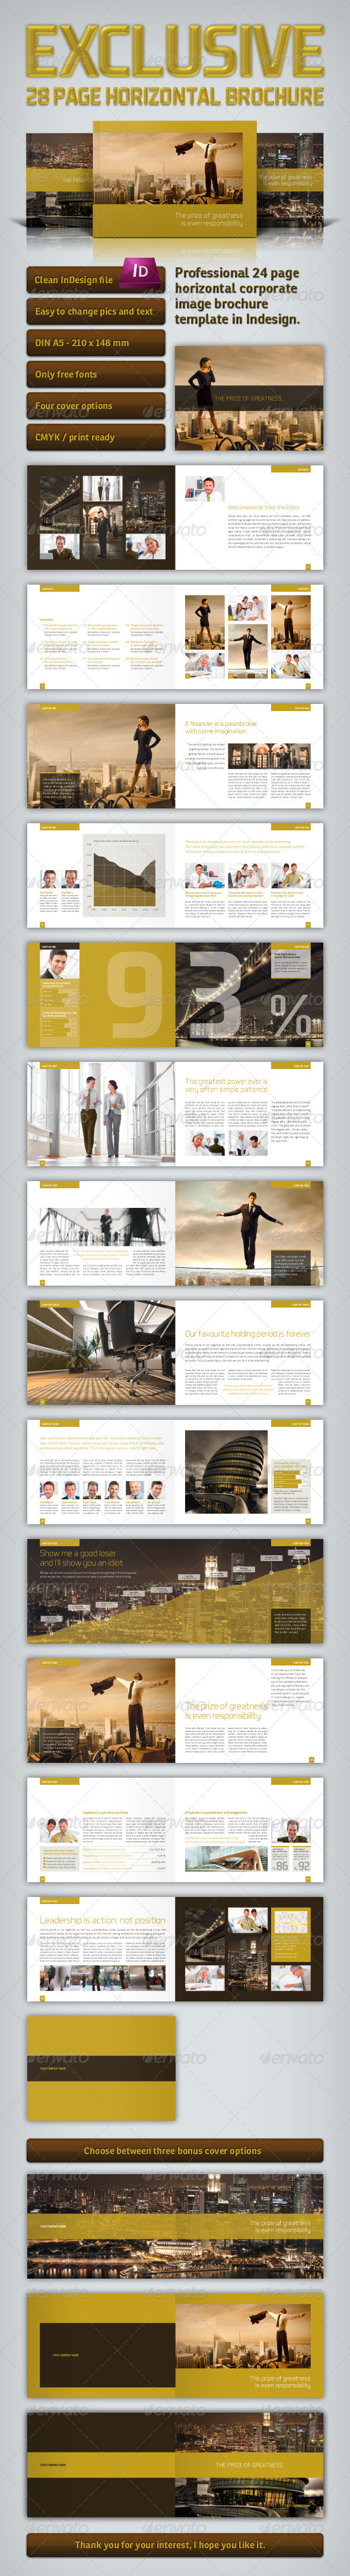 Exclusive Horizontal Brochure - Corporate Brochures